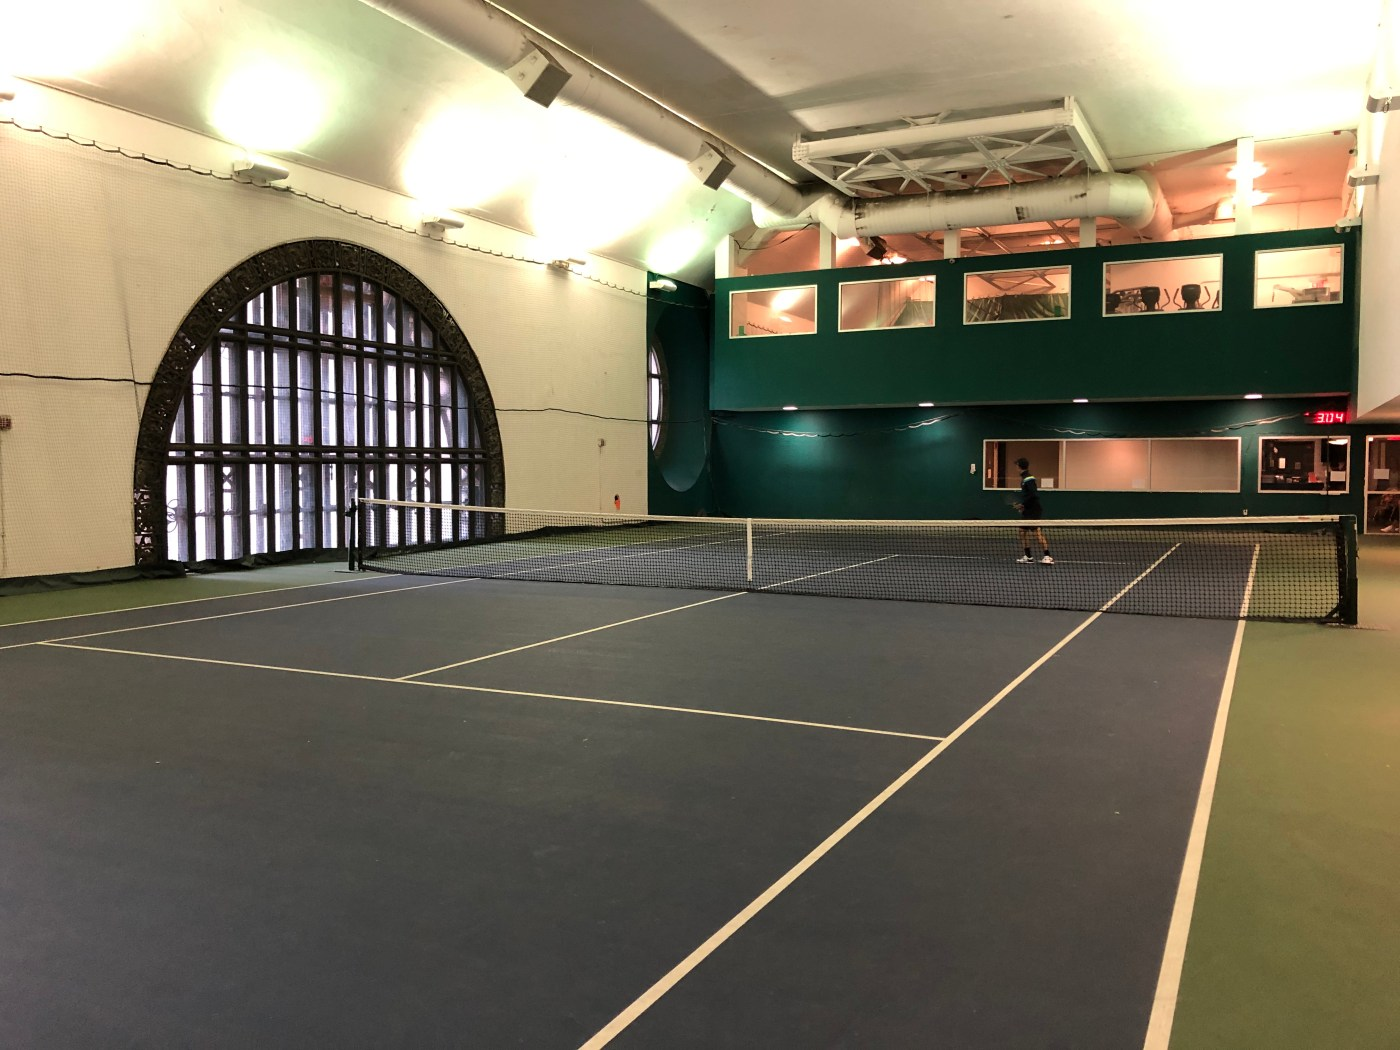 Grand Central Station has a tennis court hiding in its rafters ...